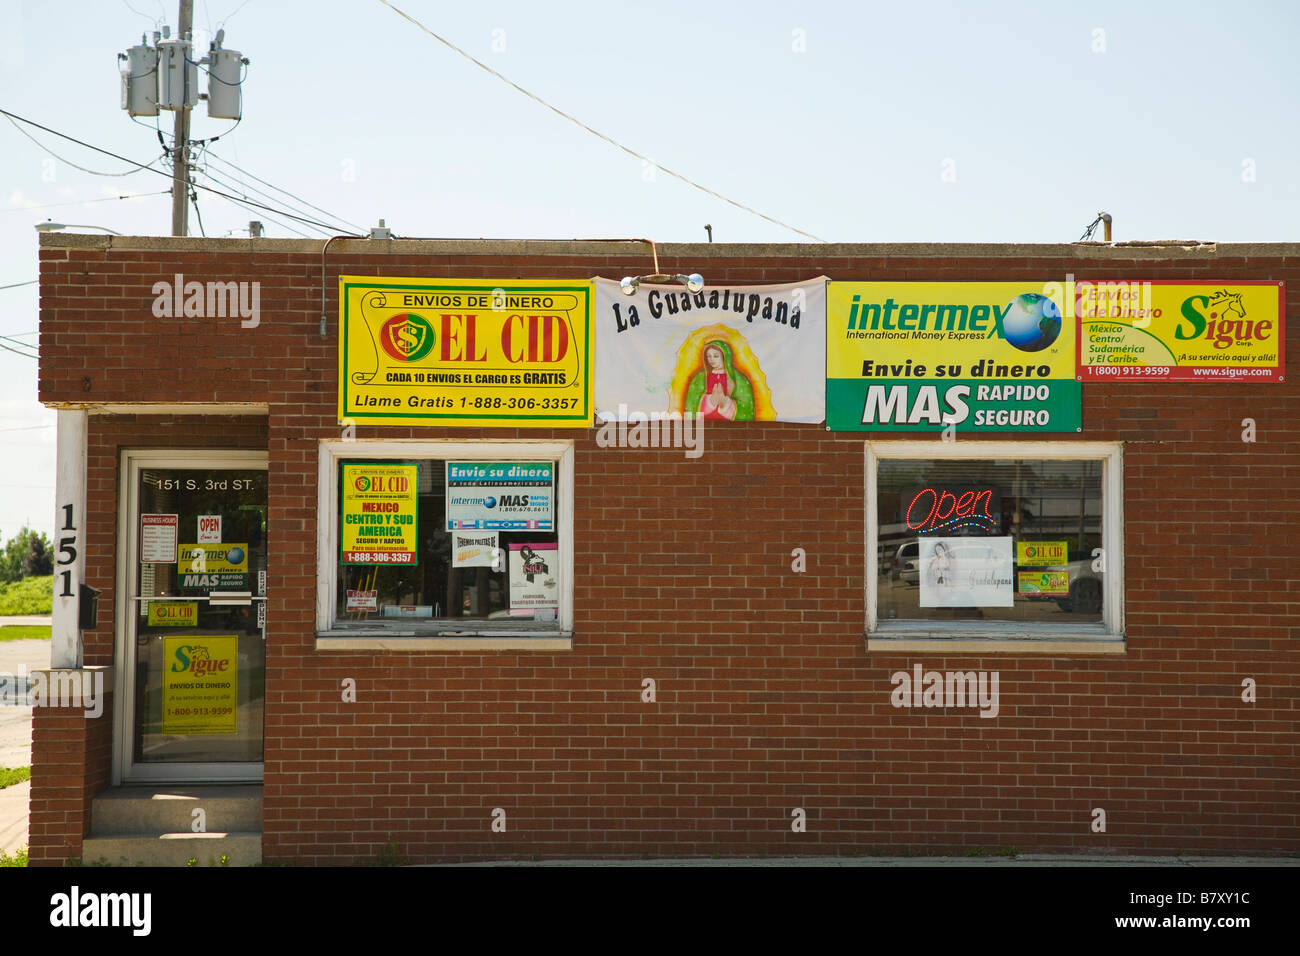 Wiring Money In Spanish Sample Diagram Symbols Illinois Dekalb Small Town Business Ads And Signs For Rh Alamy Com